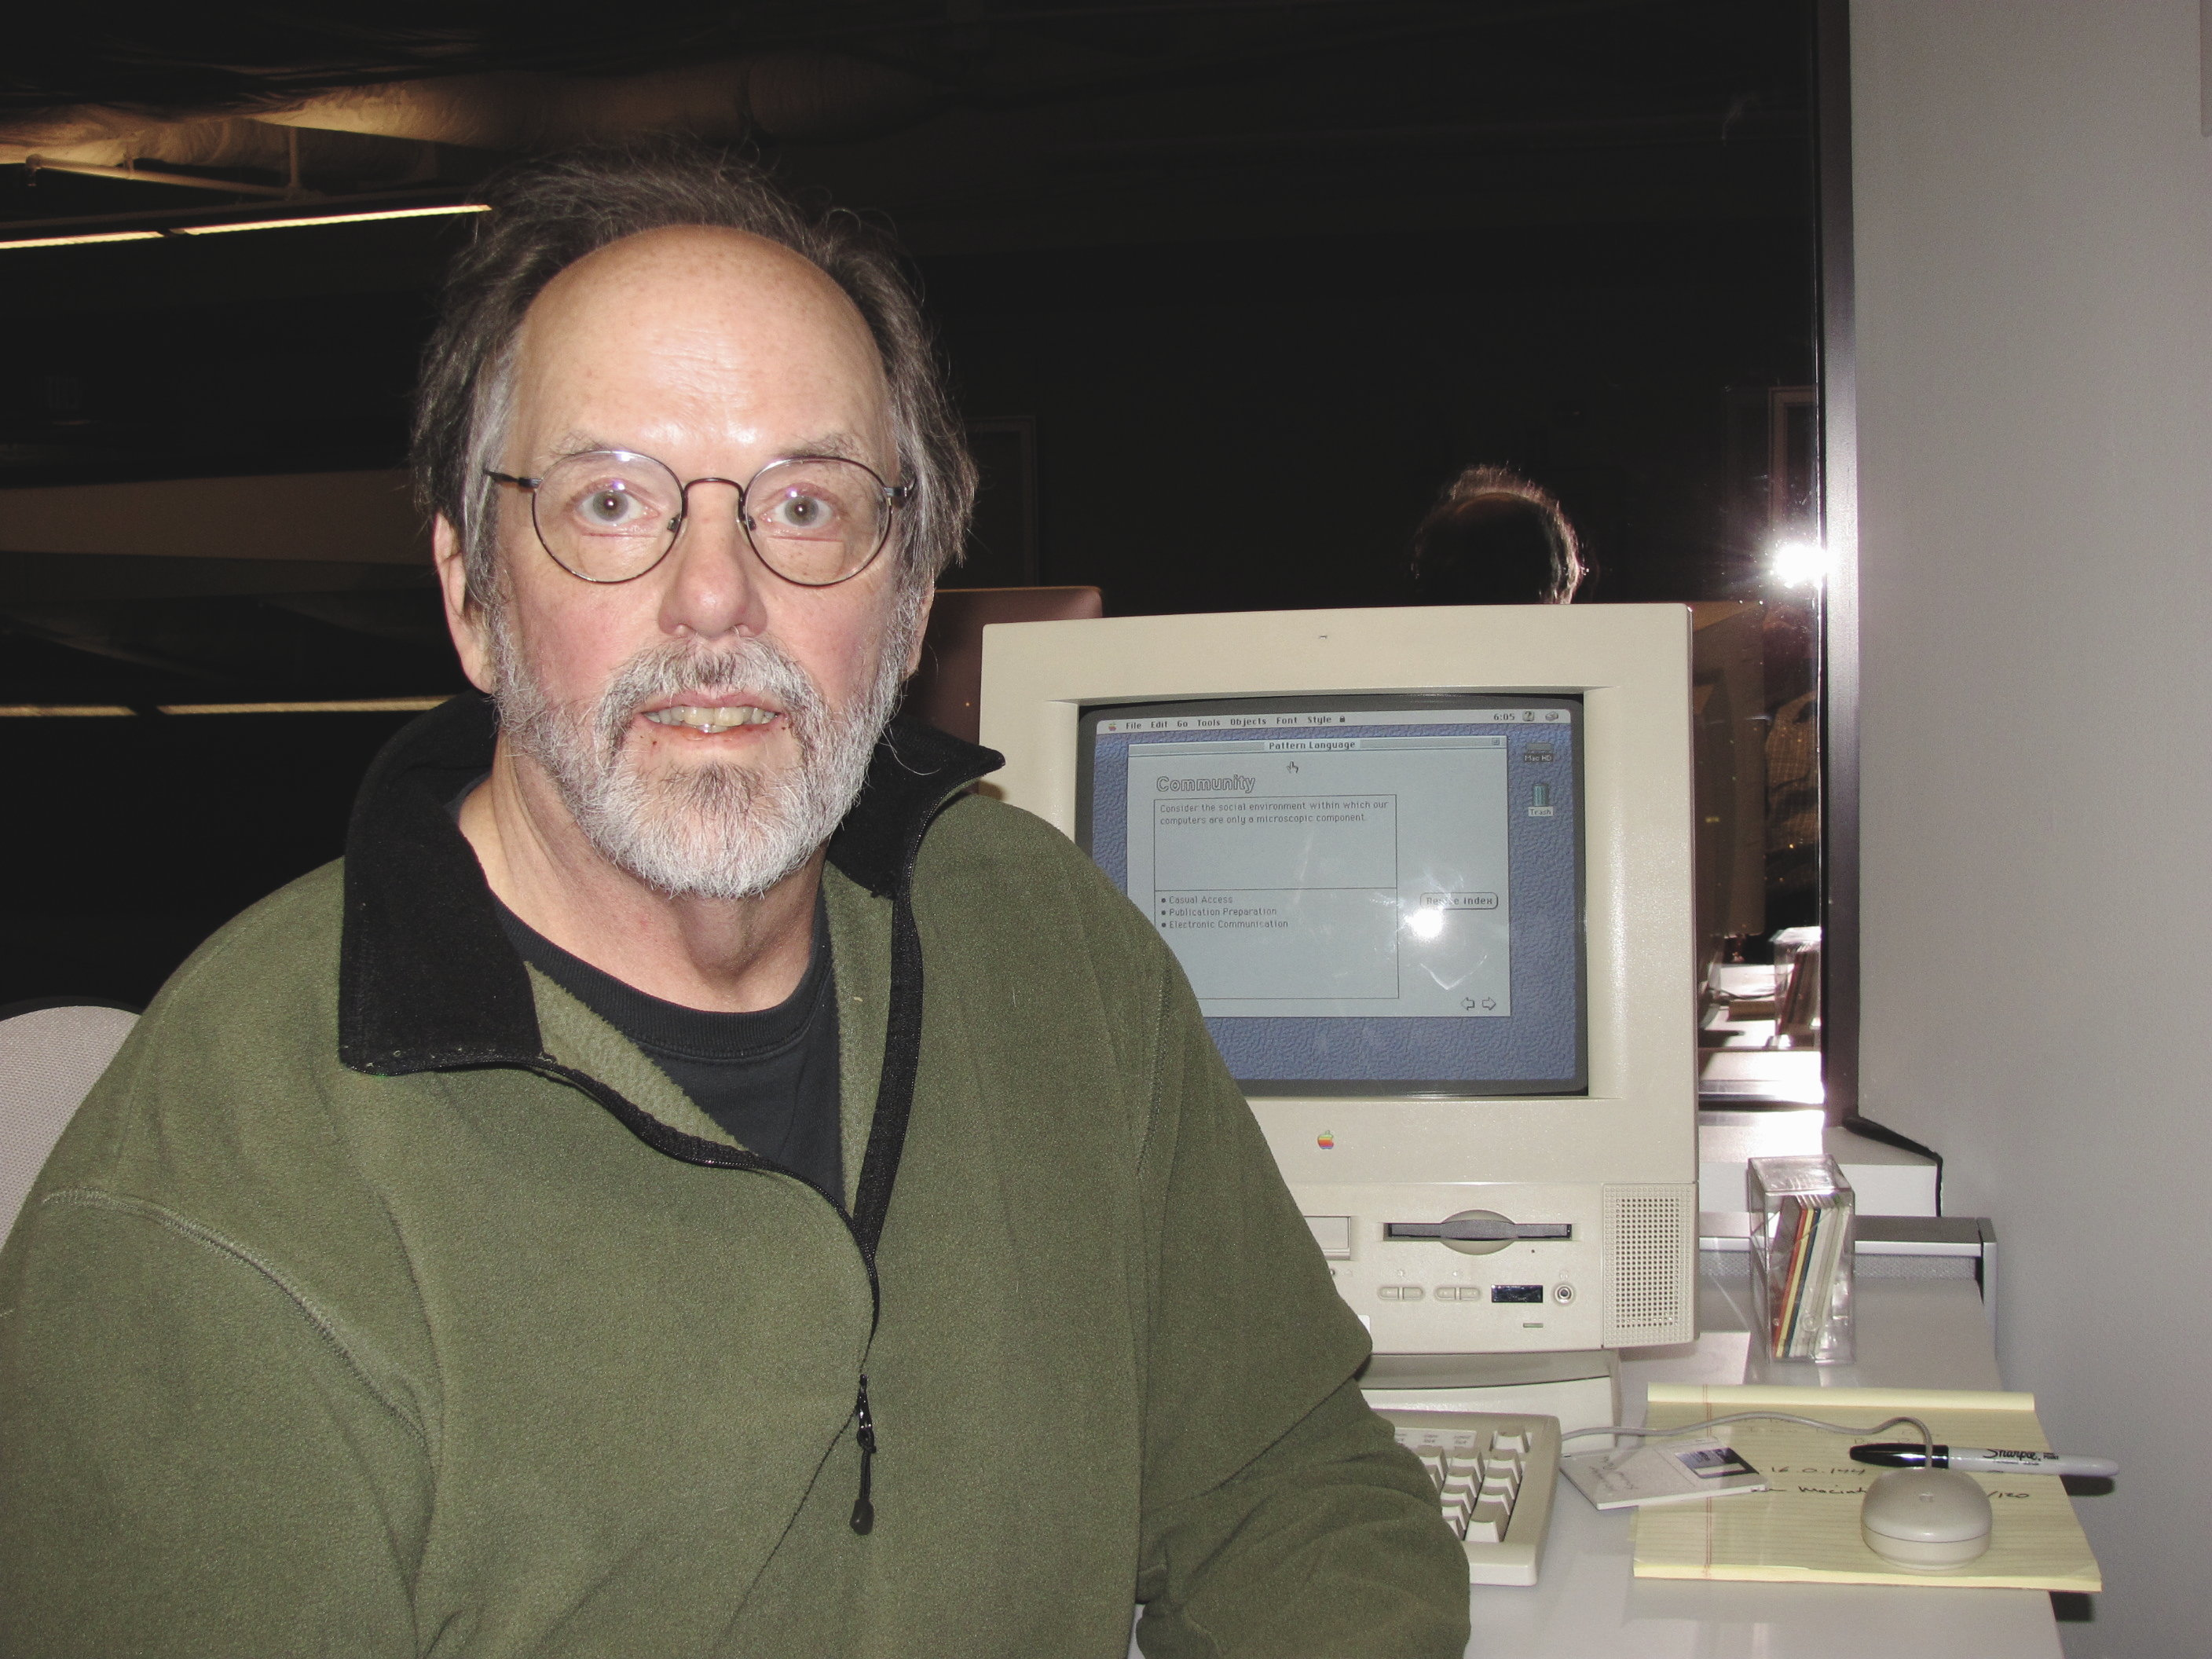 File:Ward Cunningham with Hypercard stack.jpg - Wikimedia Commons